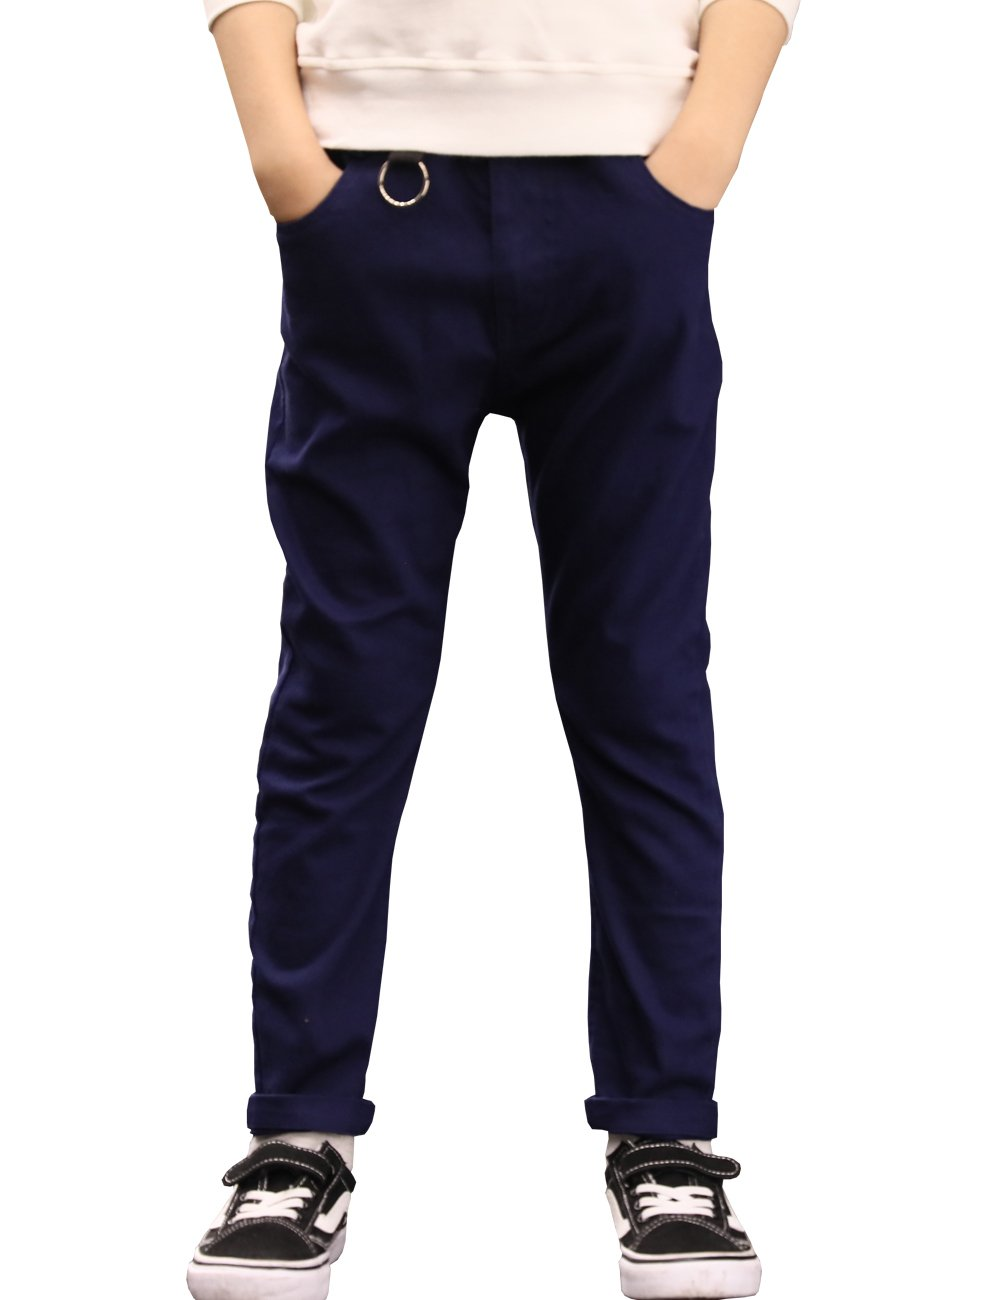 BYCR Boys' Skinny Elastic Waistband Cotton Jogging Pants W9177100732 (Navy, 170 (US Size 14/16))